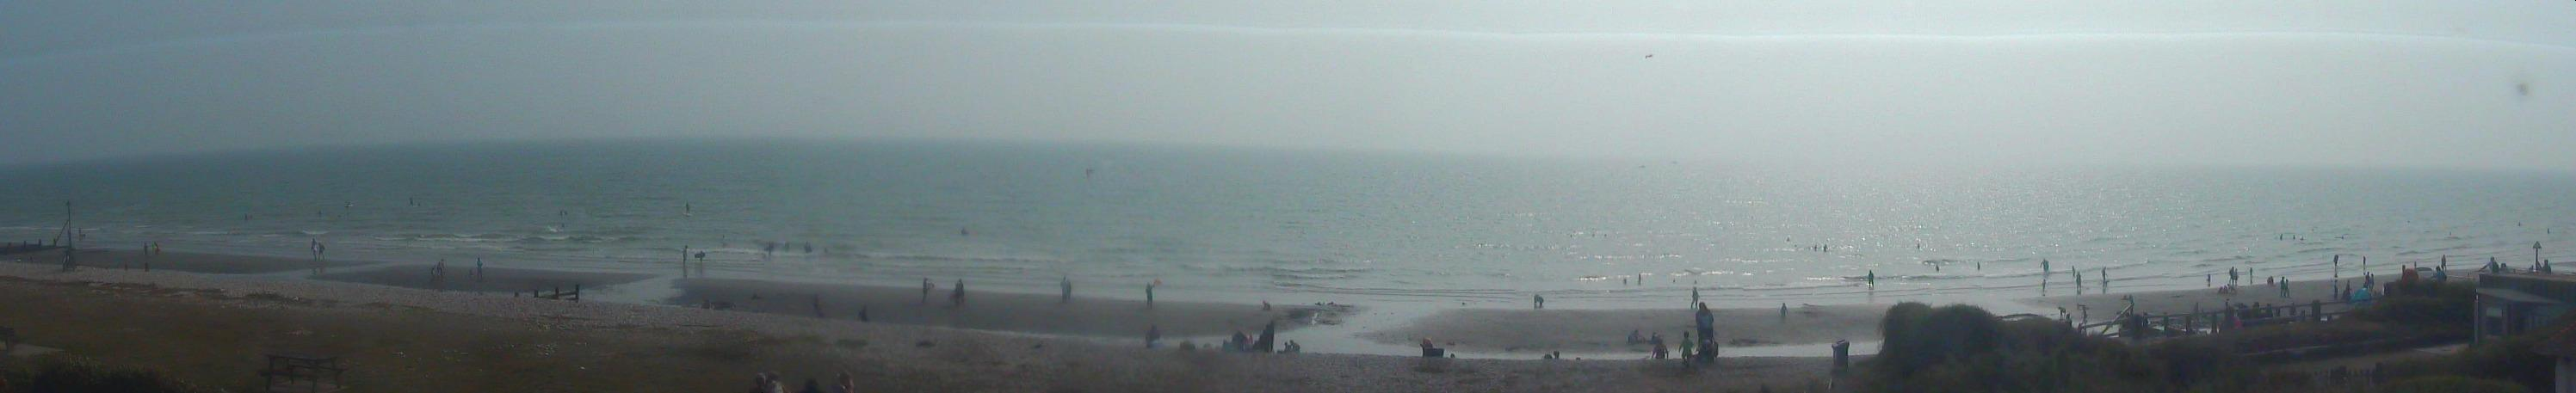 Webcam mais recente para East Wittering